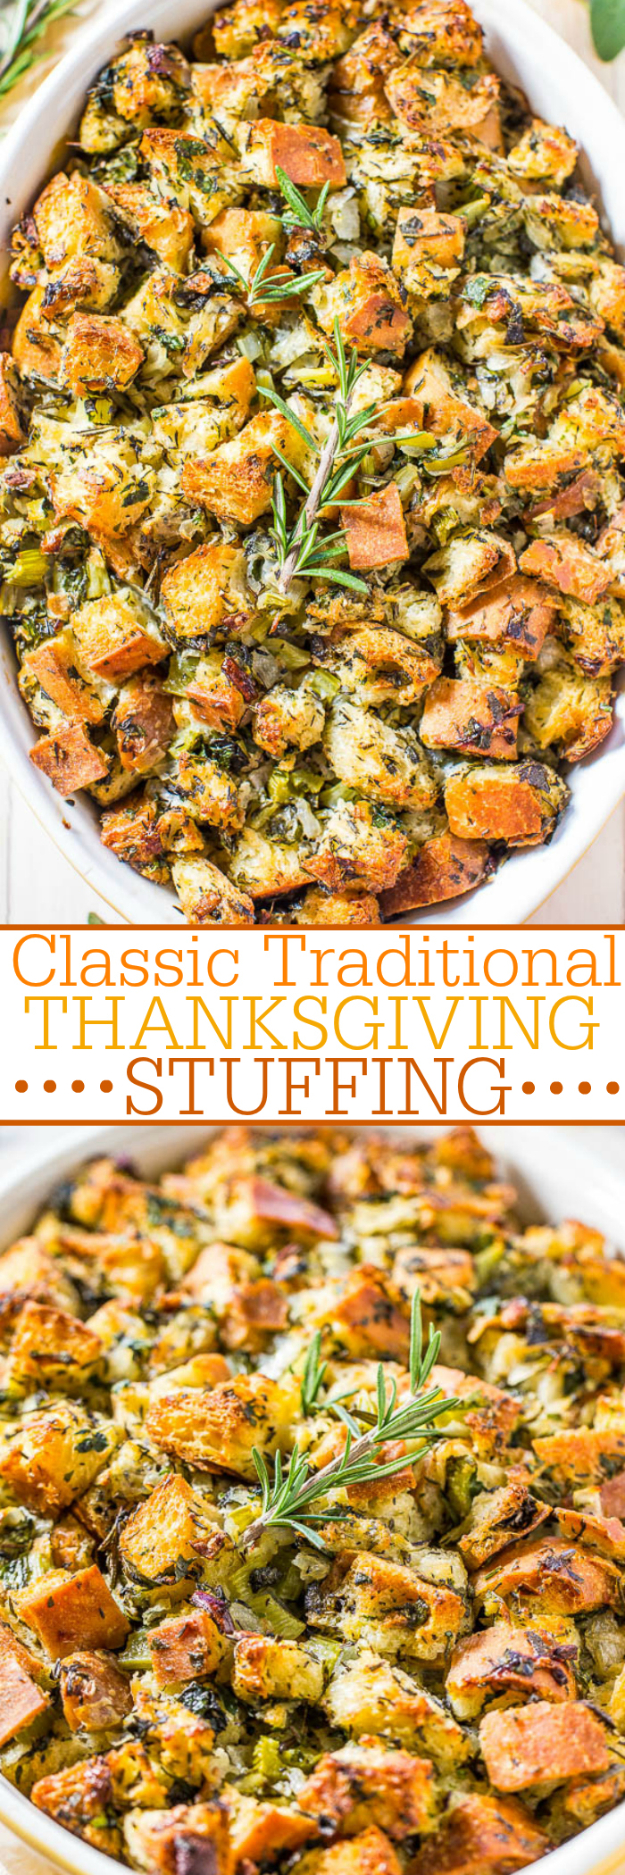 Best Thanksgiving Dinner Recipes - Classic Traditional Thanksgiving Stuffing - Easy DIY Desserts, Sides, Sauces, Main Courses, Vegetables, Pie and Side Dishes. Simple Gravy, Cranberries, Turkey and Pies With Step by Step Tutorials